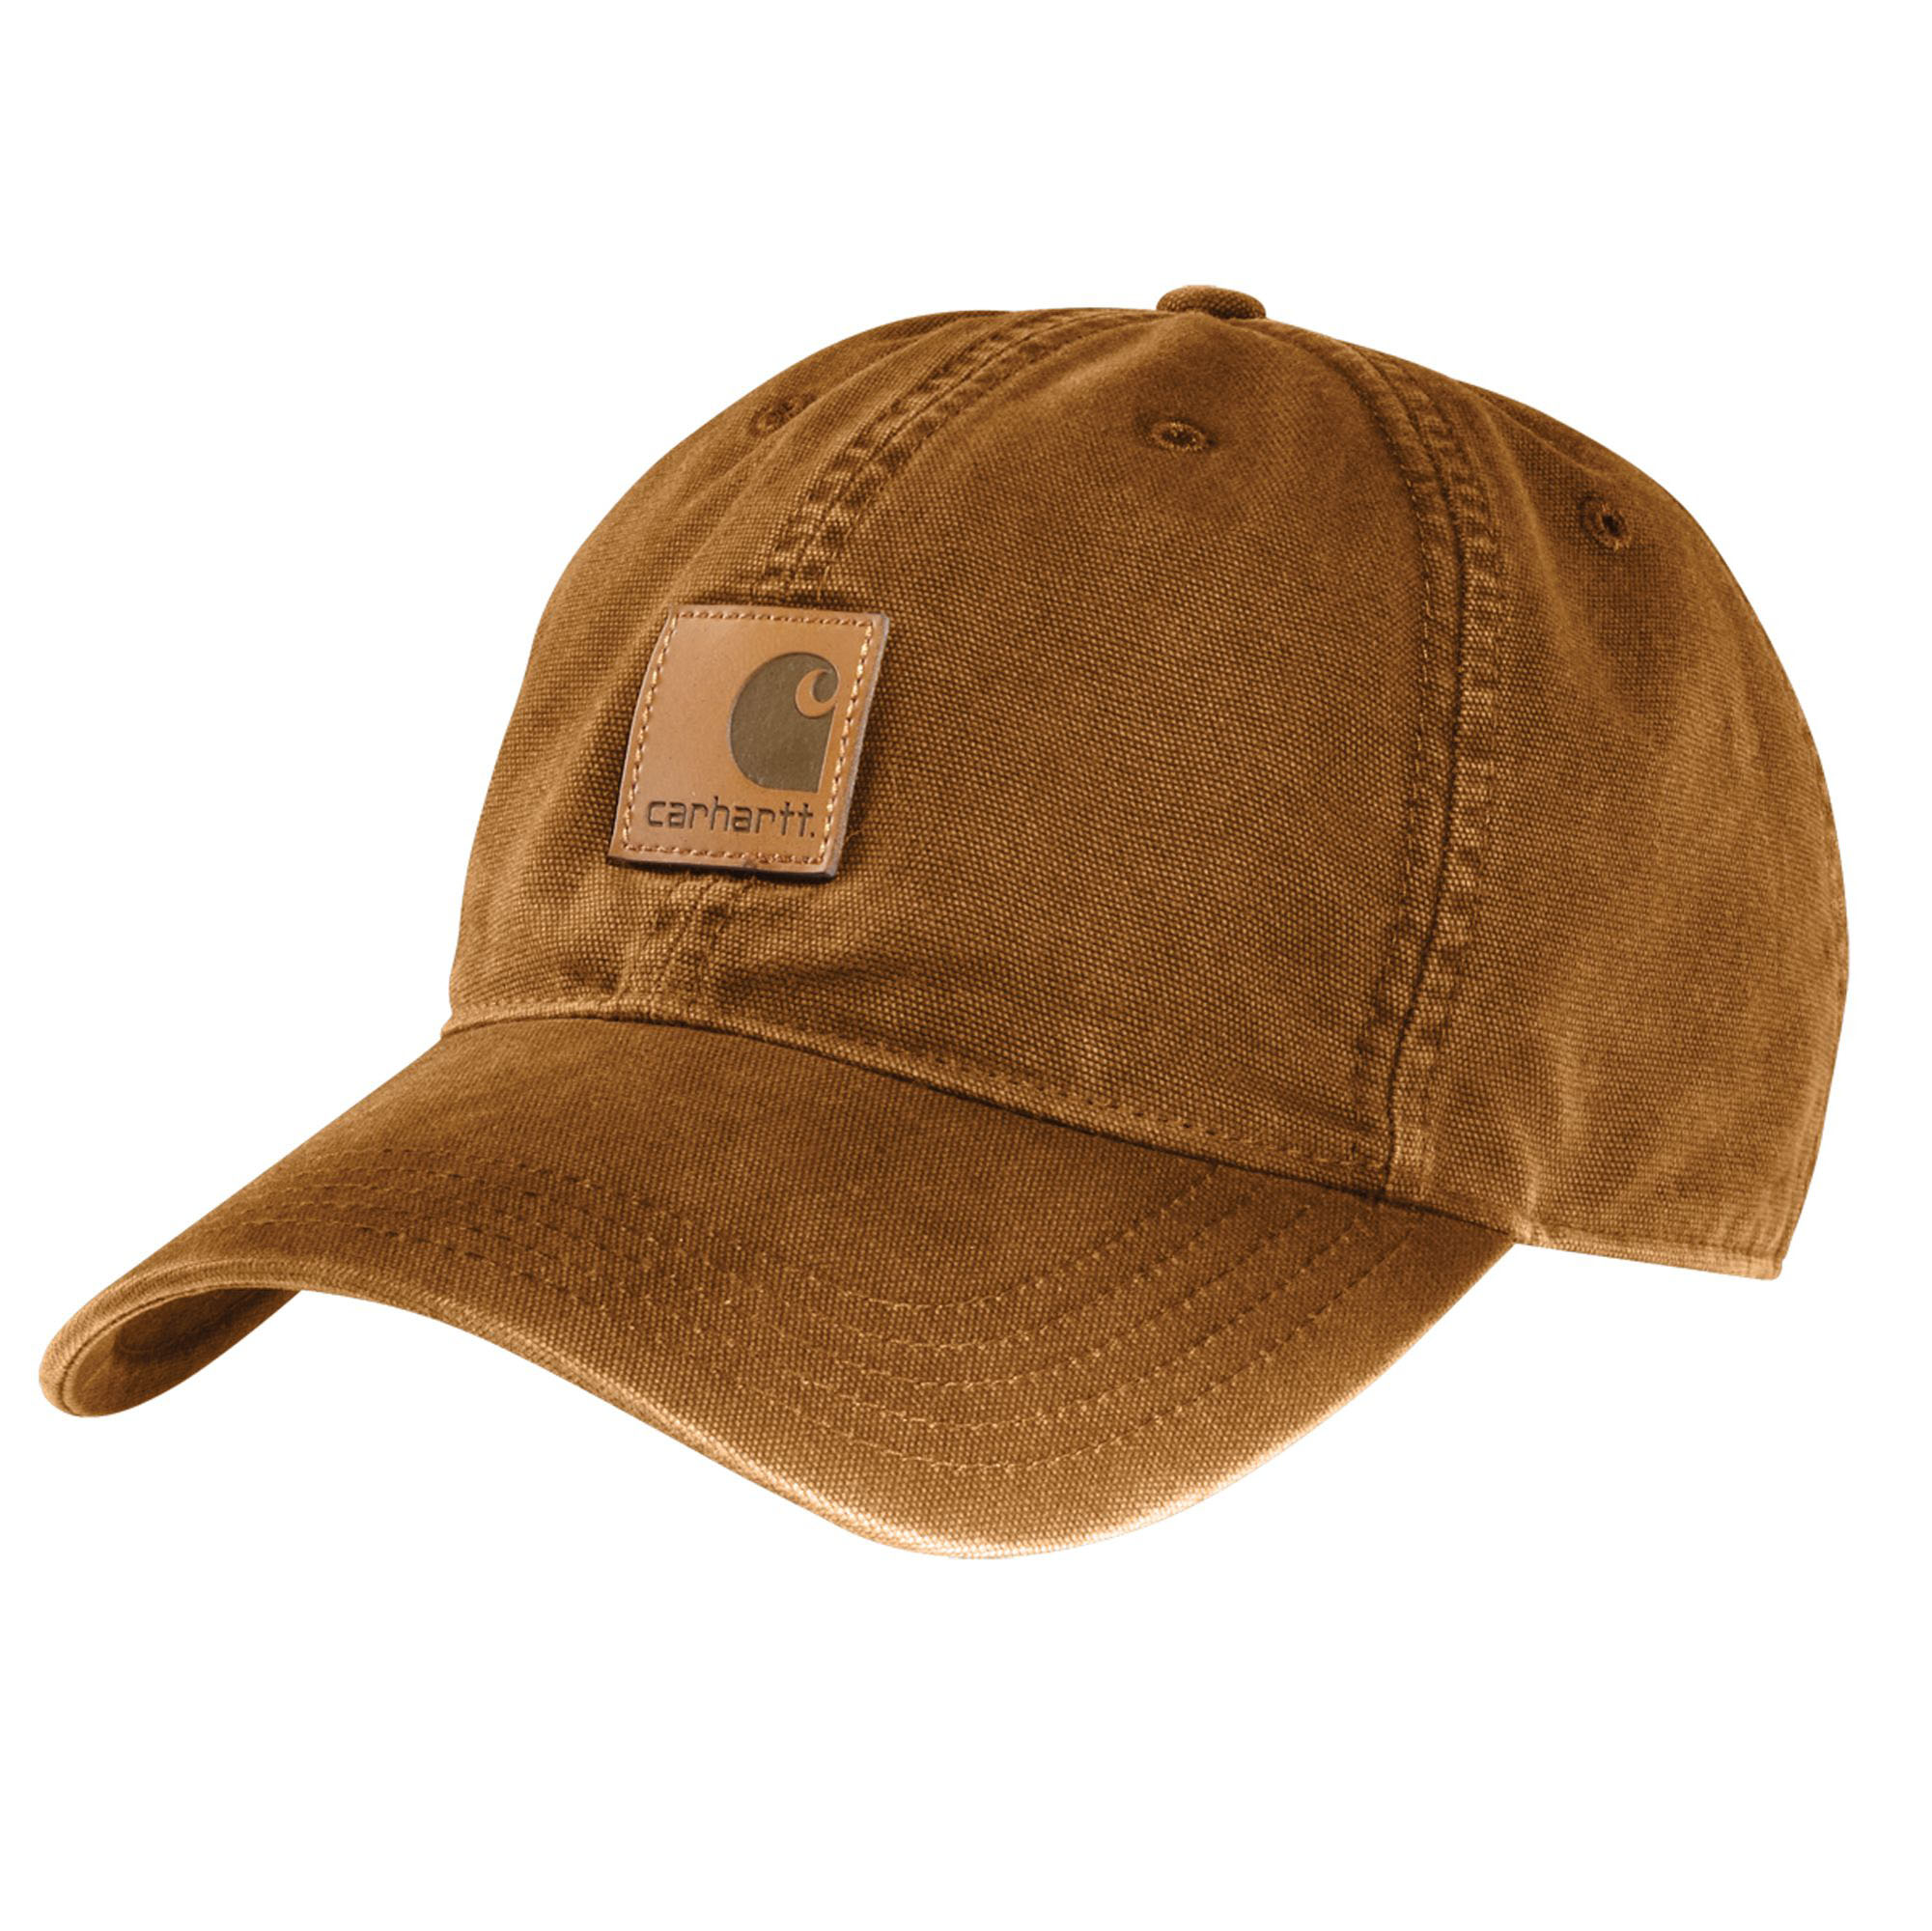 Mens hats are a passion at Village Hat Shop. We have trekked the globe in search of the best mens hats in order to make them available to you at the lowest prices. Village Hat Shop maintains an professional relationship with the top mens hat brands from around the world, such as Jaxon Hats, Borsalino, Signes, and City Sport Caps.